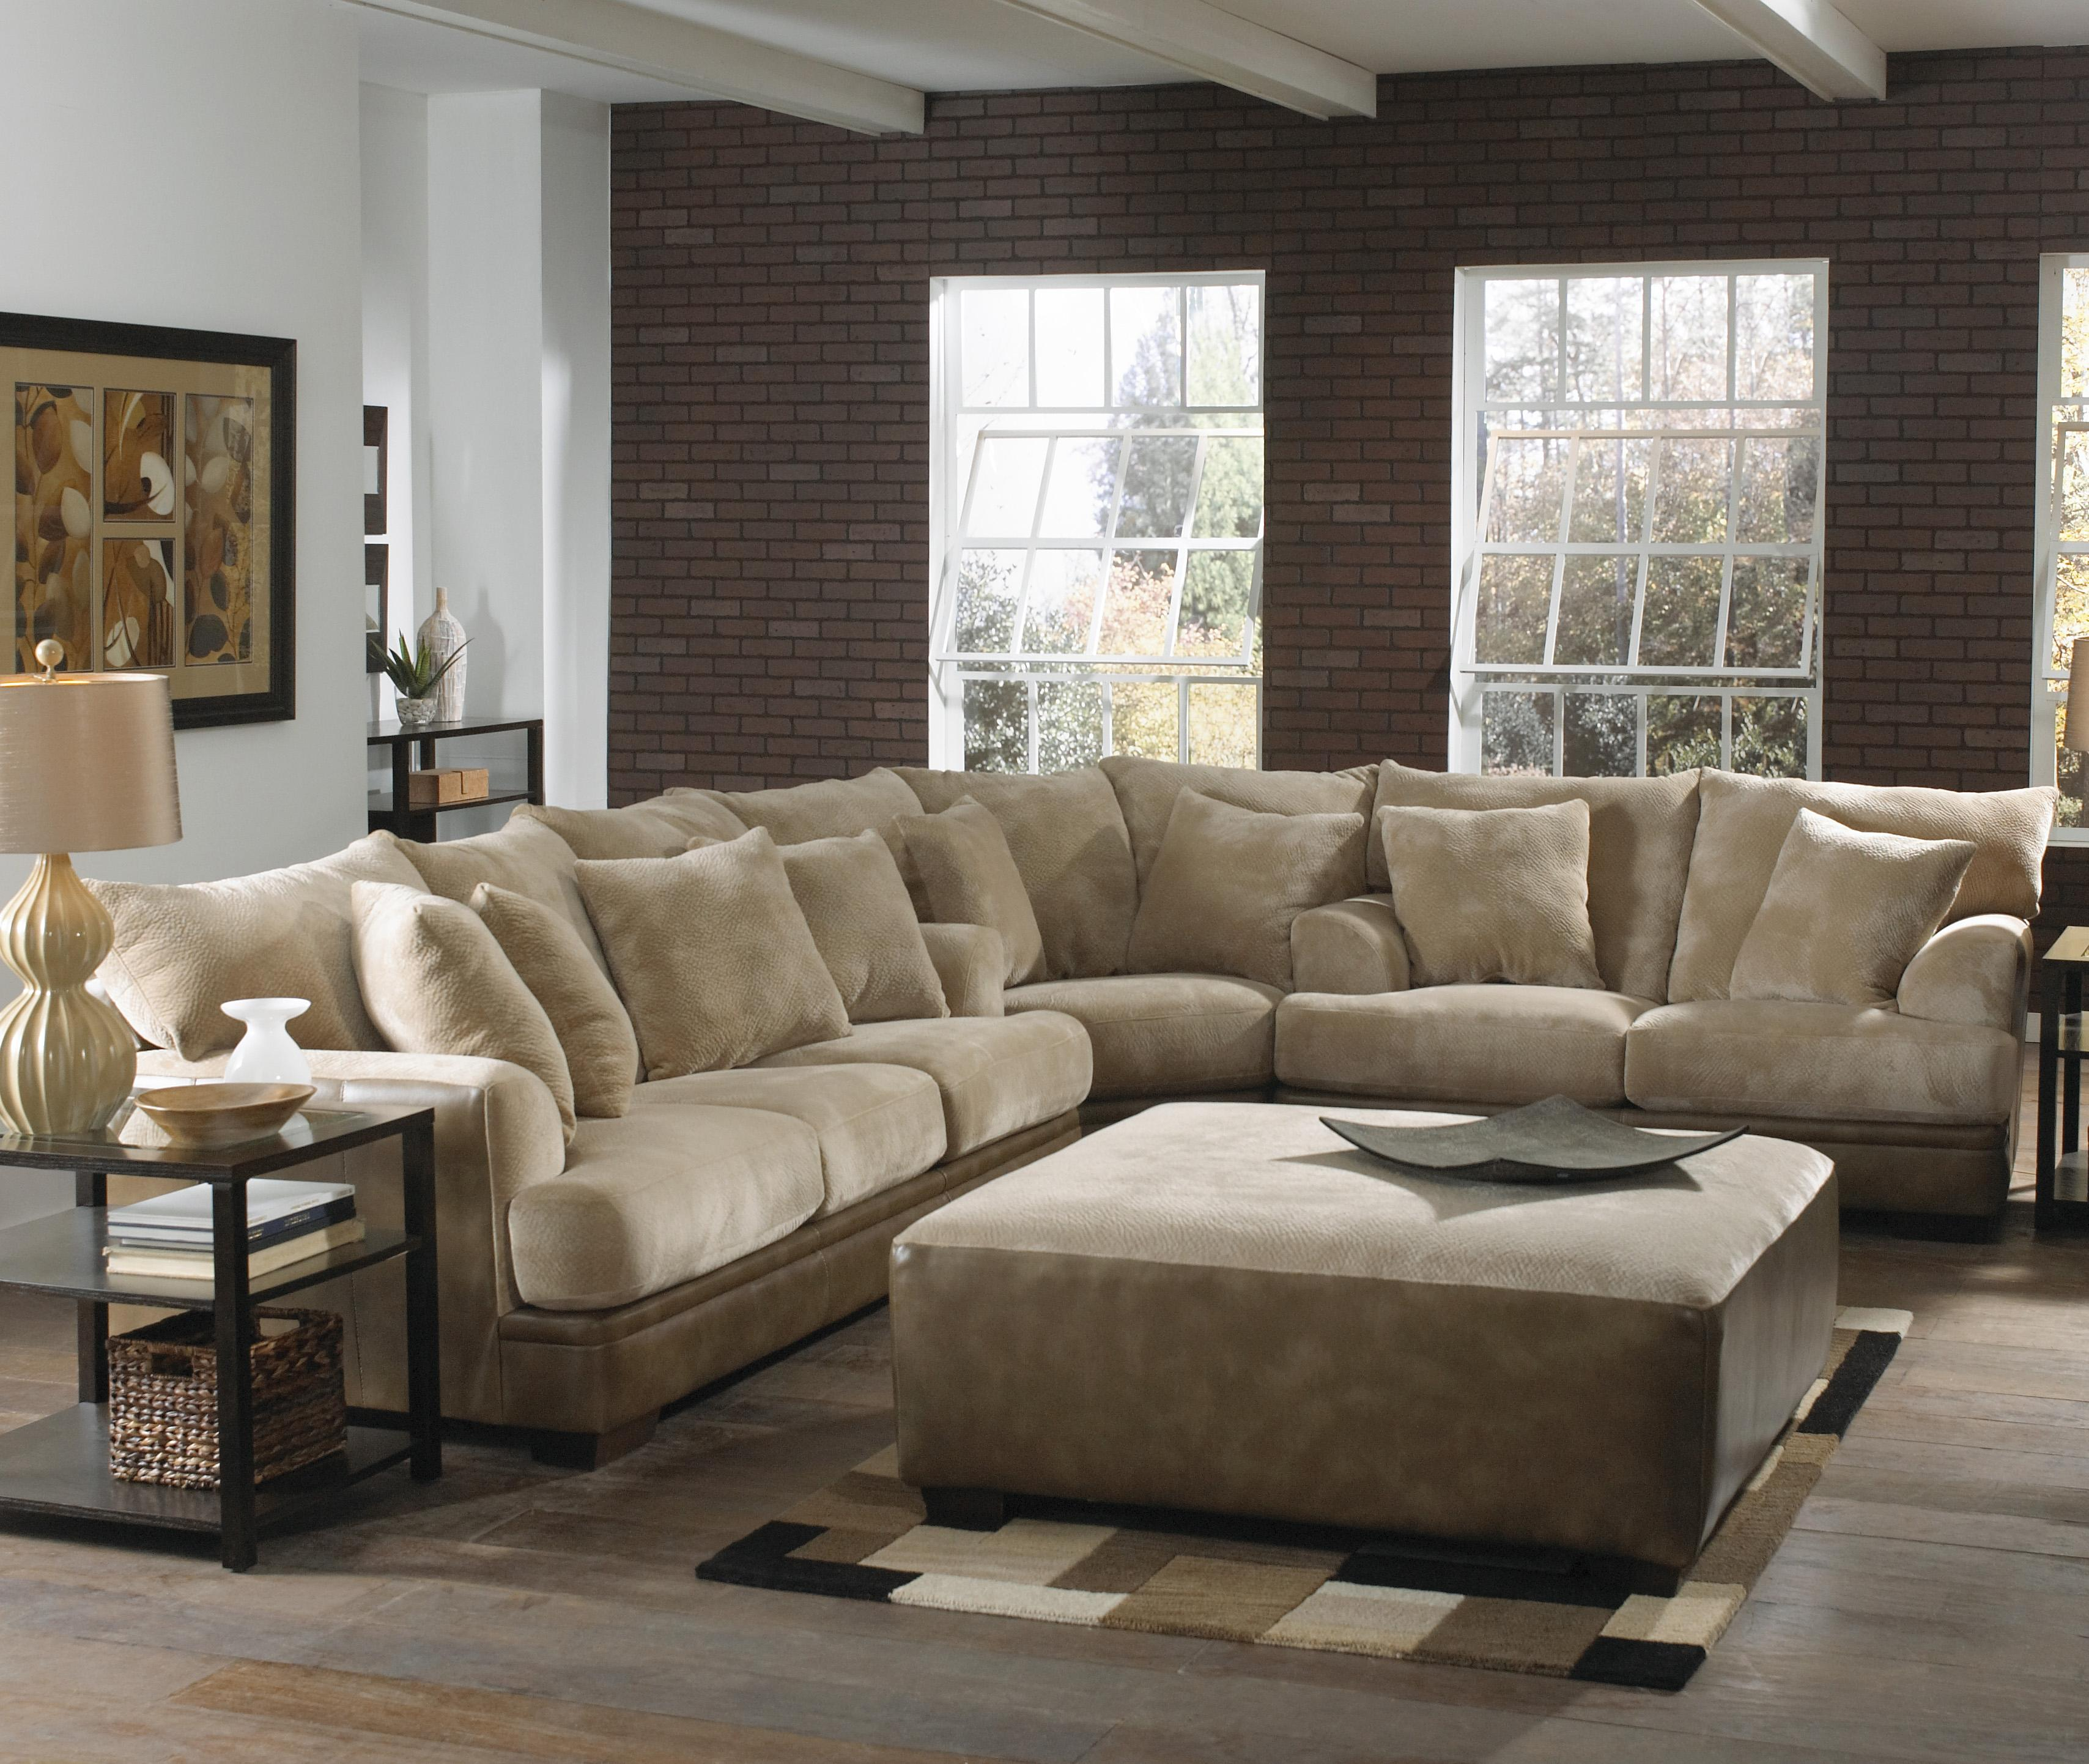 Small L Shaped Couch | Tufted Sectional Sofa | Large Sectional Sofas